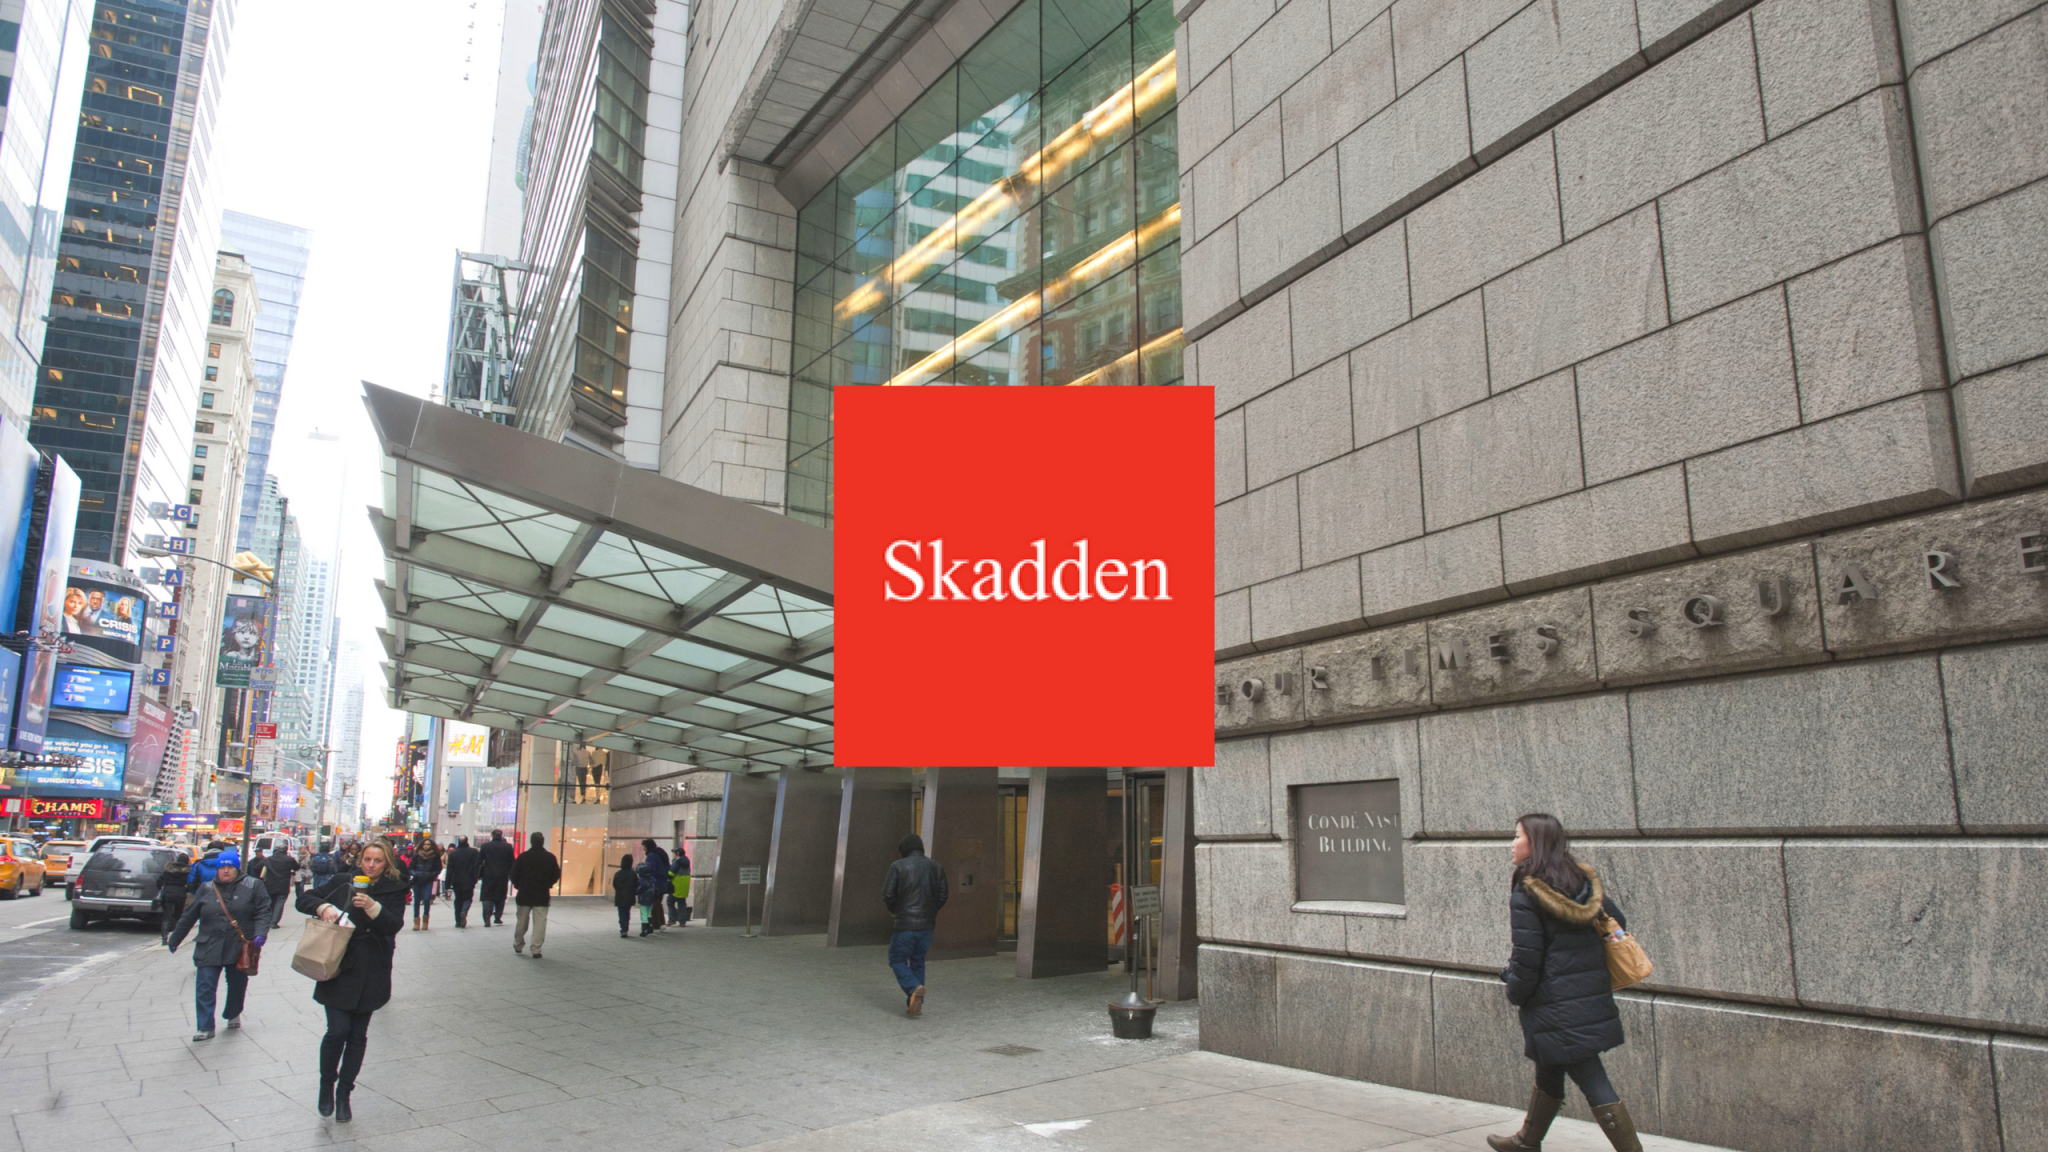 Skadden Best Legal Law Firms in the World UpSlide